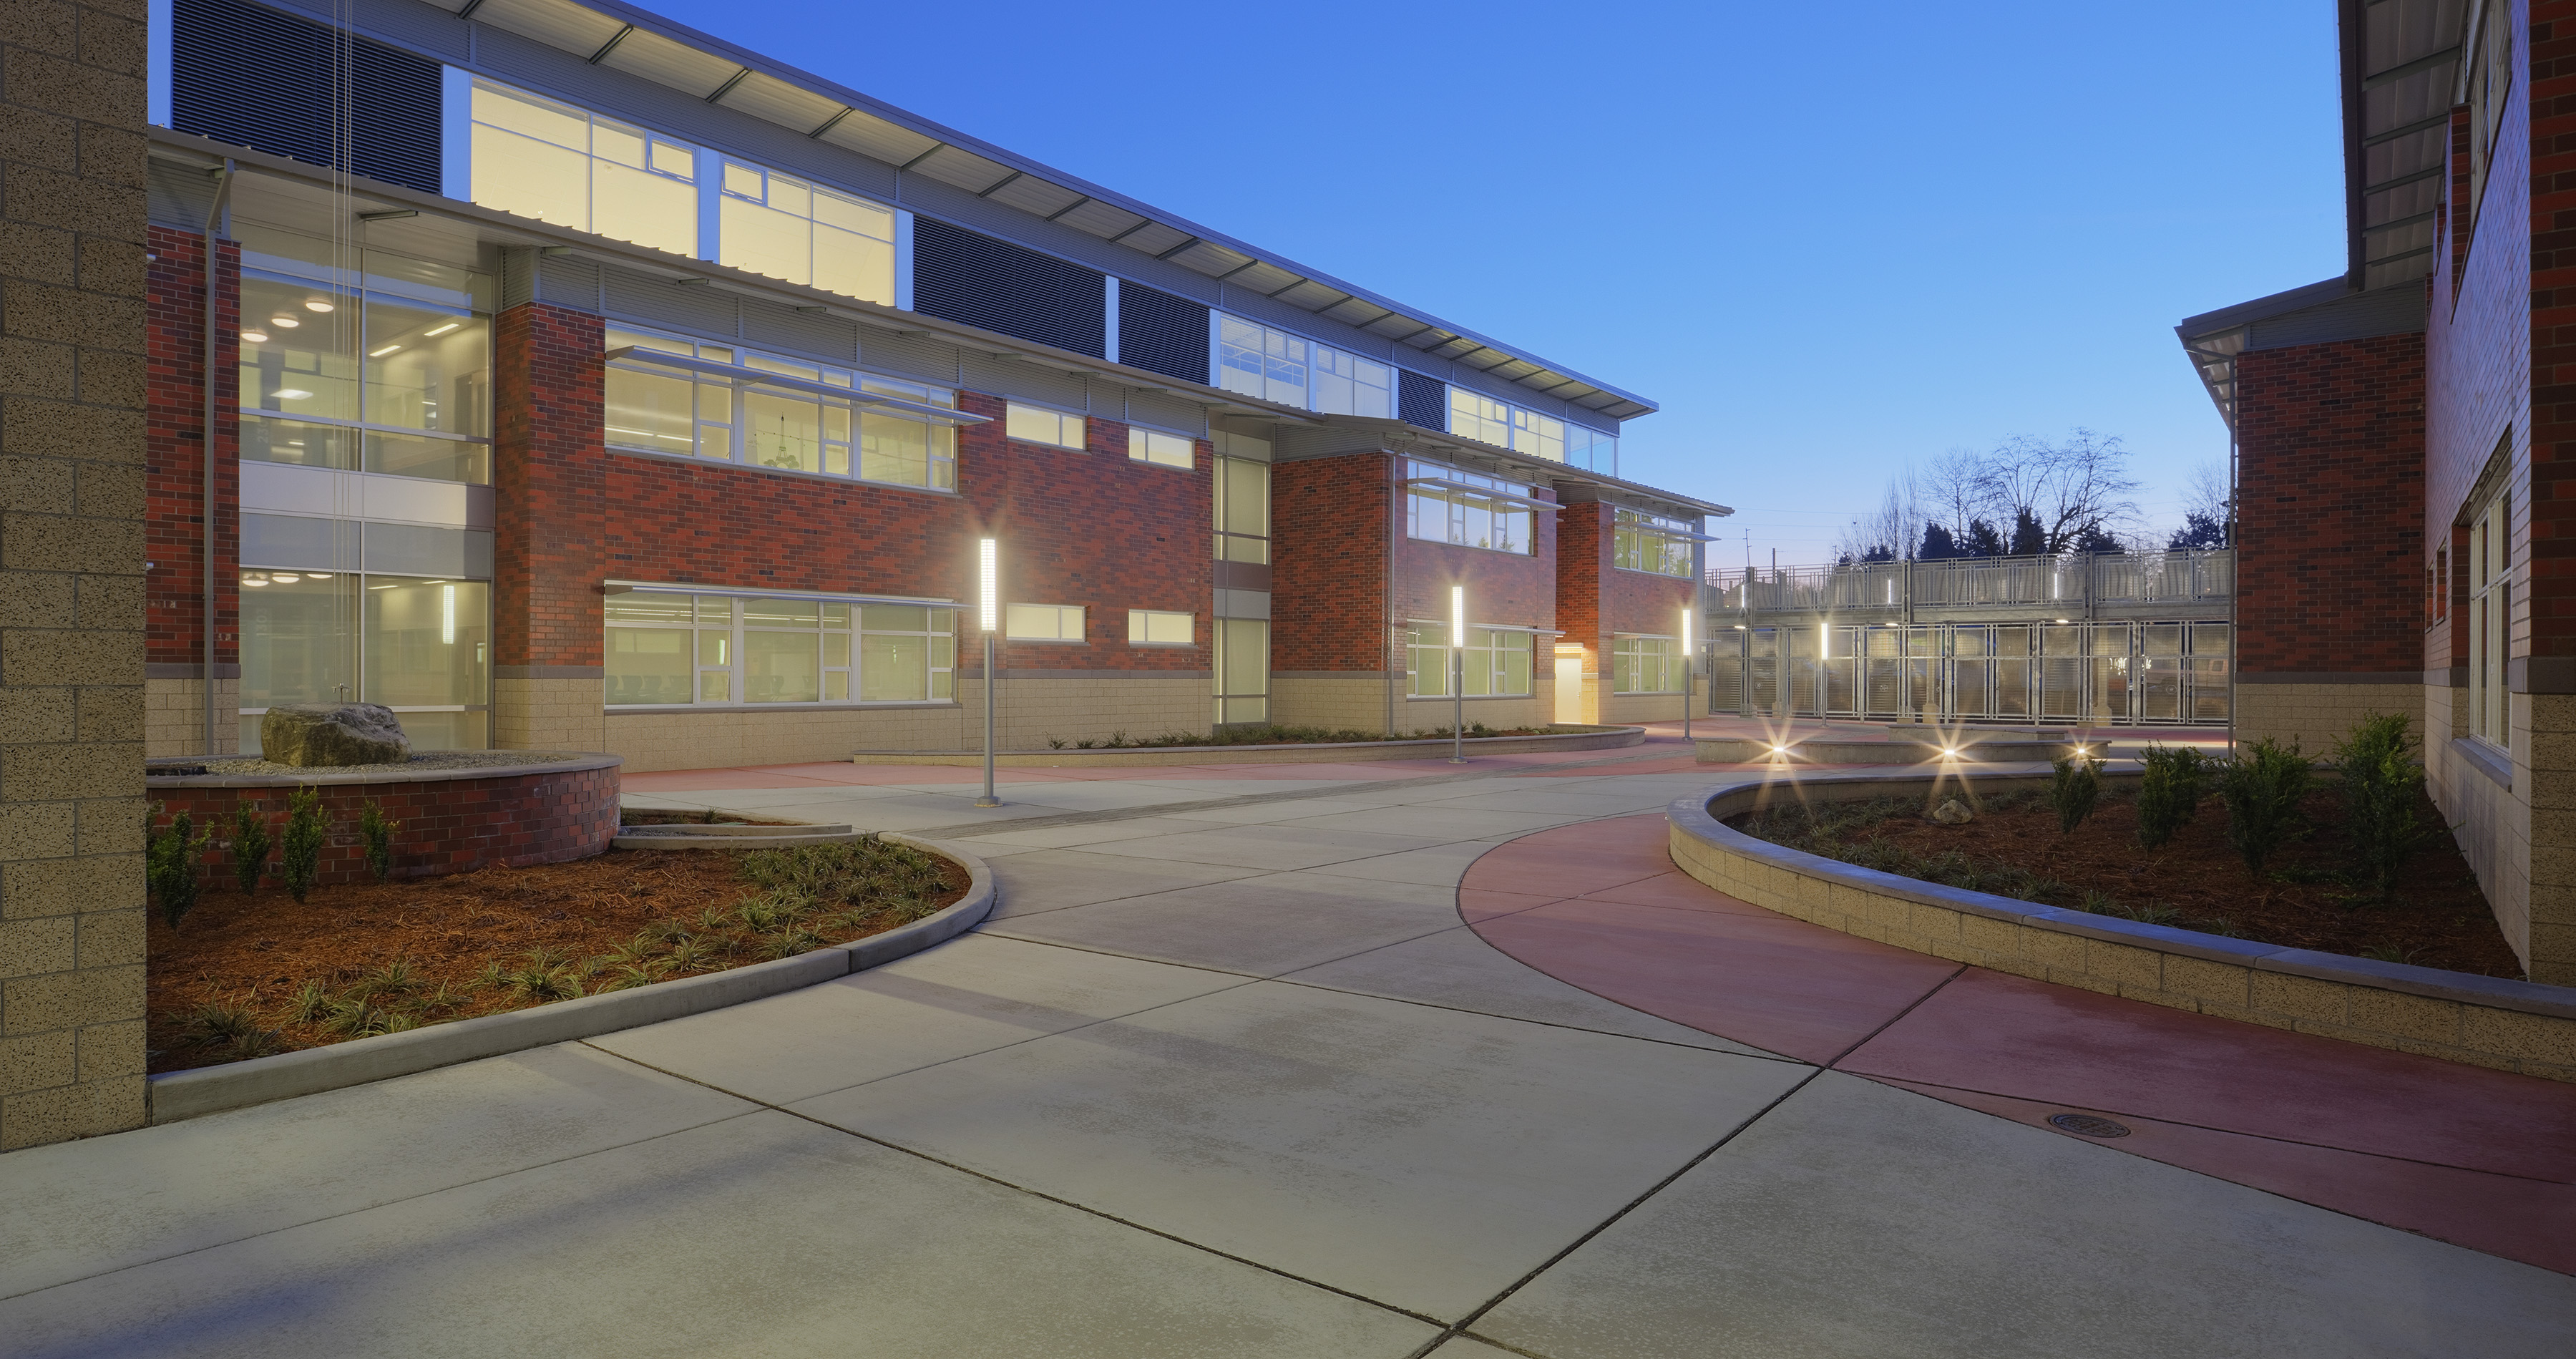 Fig. i-11 (above) Baker Middle School (opened in 2012) showcases roof overhangs that assist in deflecting rainwater away from the building enclosure below. Sun shades over windows also assist with controlling solar loads and reducing rain exposure.